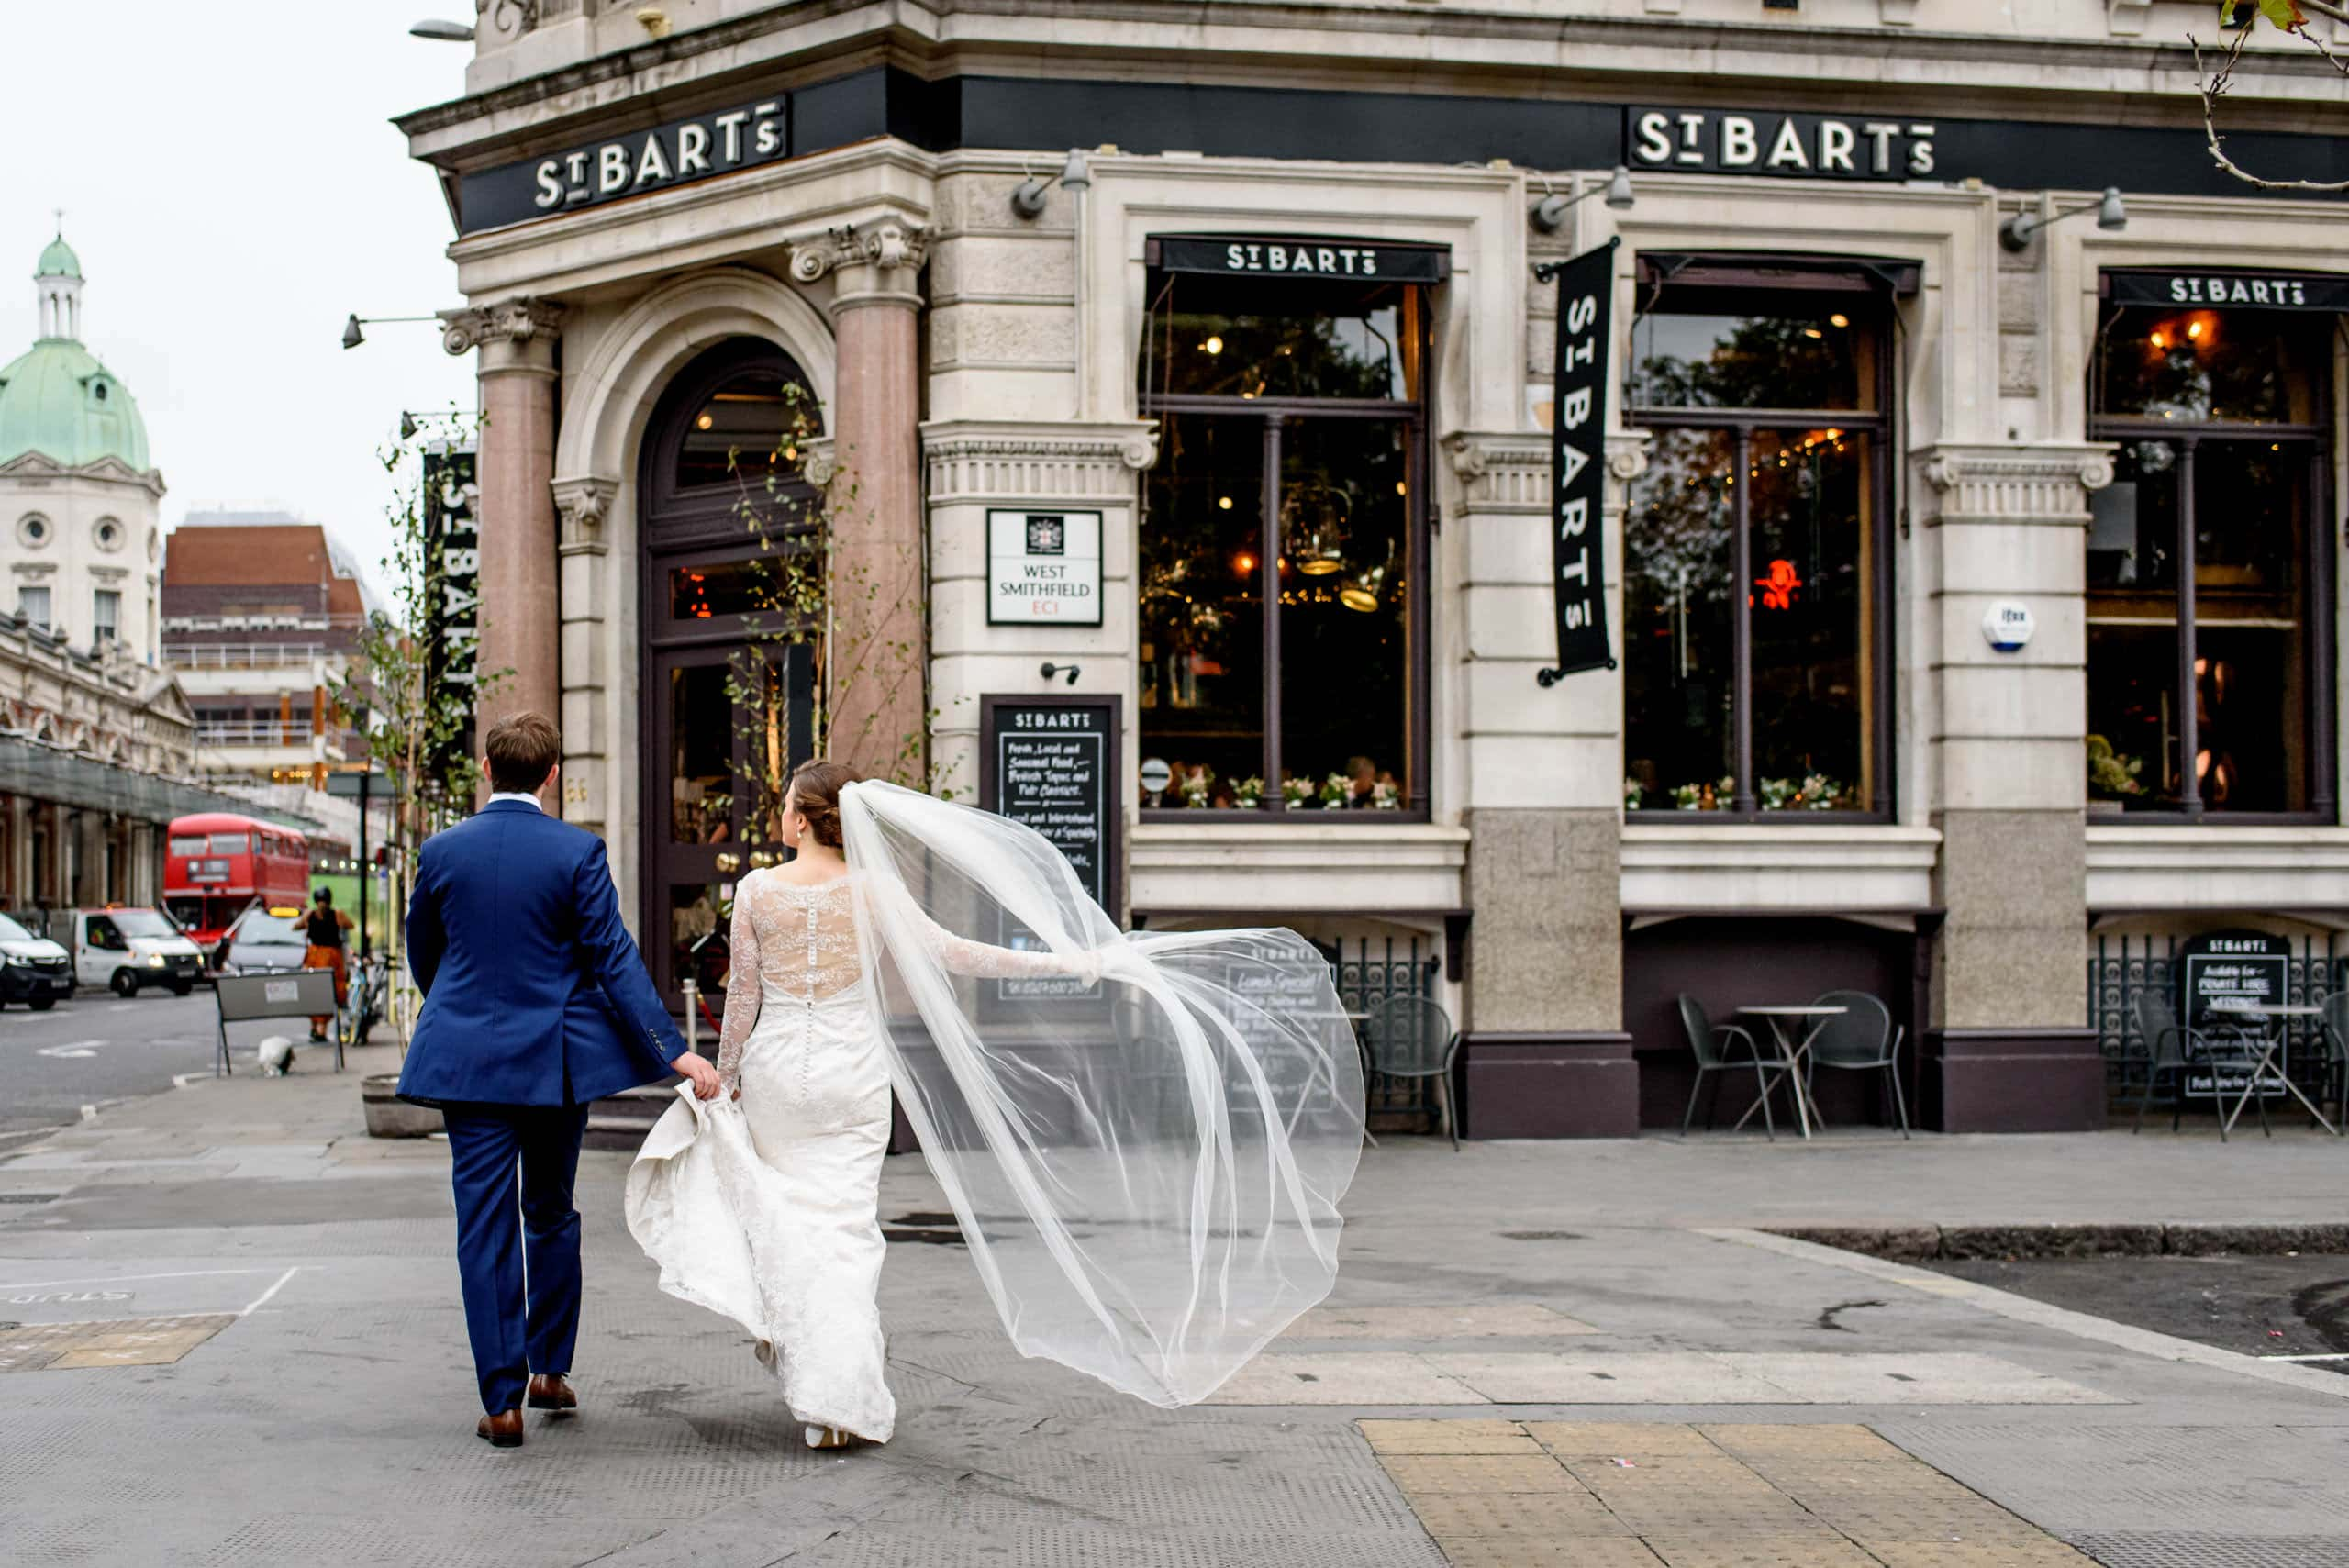 Groom and bride with her veil caught in the wind about to enter their St Bart's Brewery wedding celebrations in London